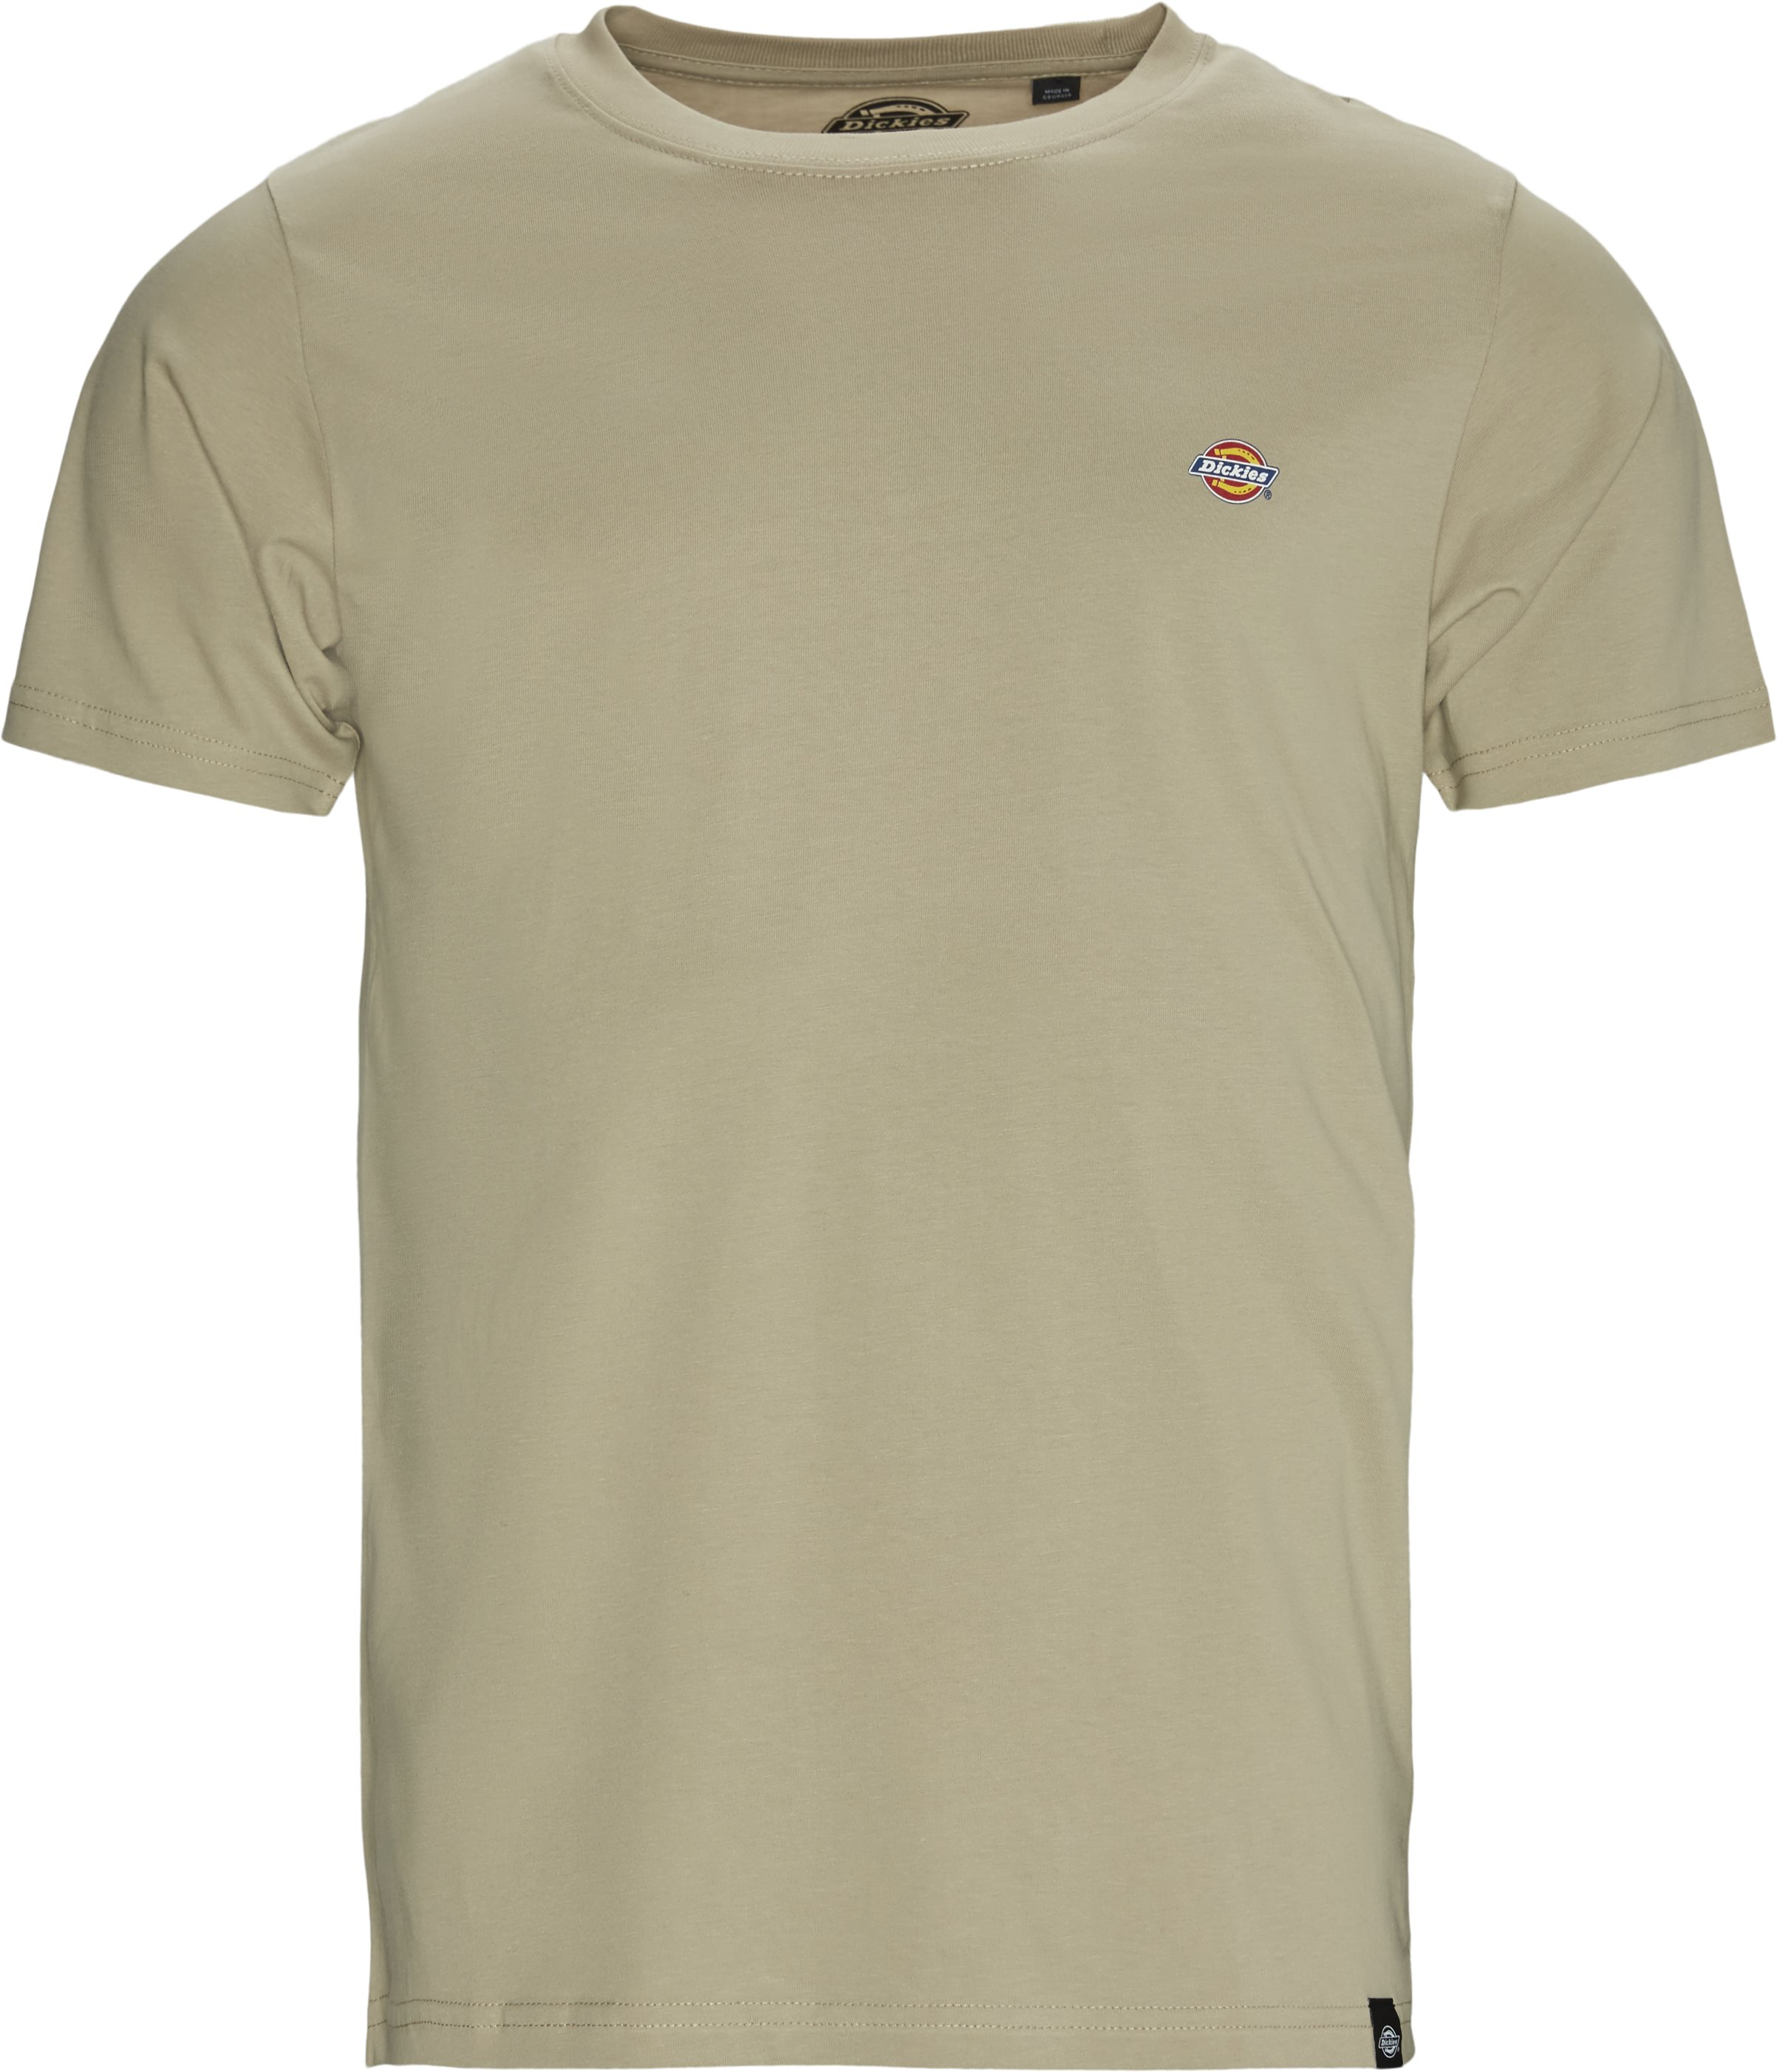 Stockdale Tee - T-shirts - Regular - Sand